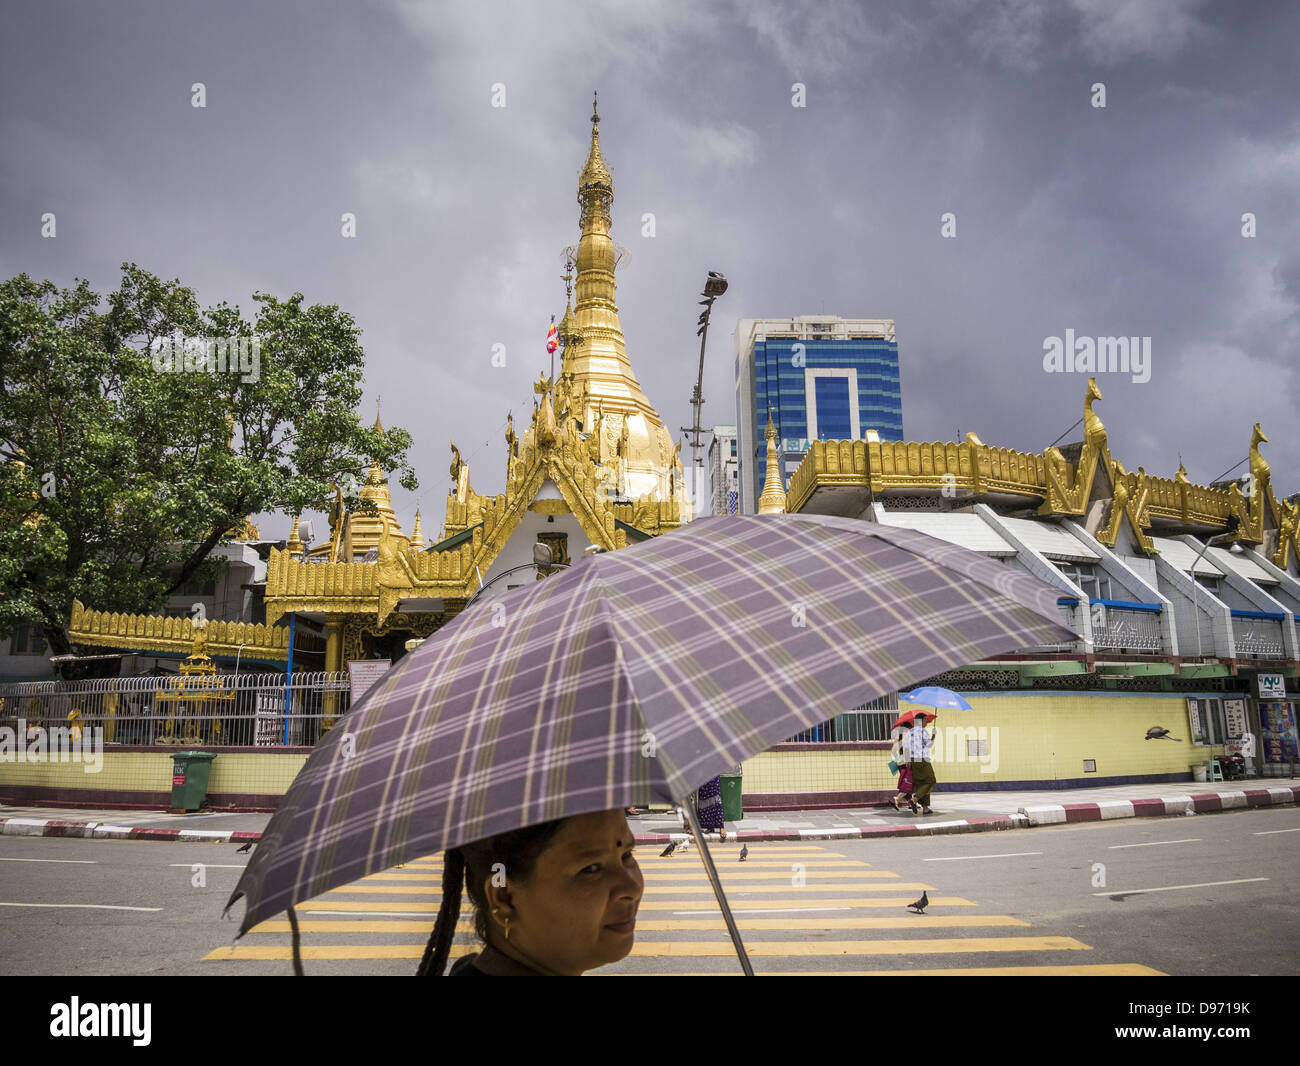 June 12, 2013 - Yangon, Union of Myanmar - A woman walks past Sule Pagoda in Yangon, Myanmar. Sule Pagoda is one - Stock Image